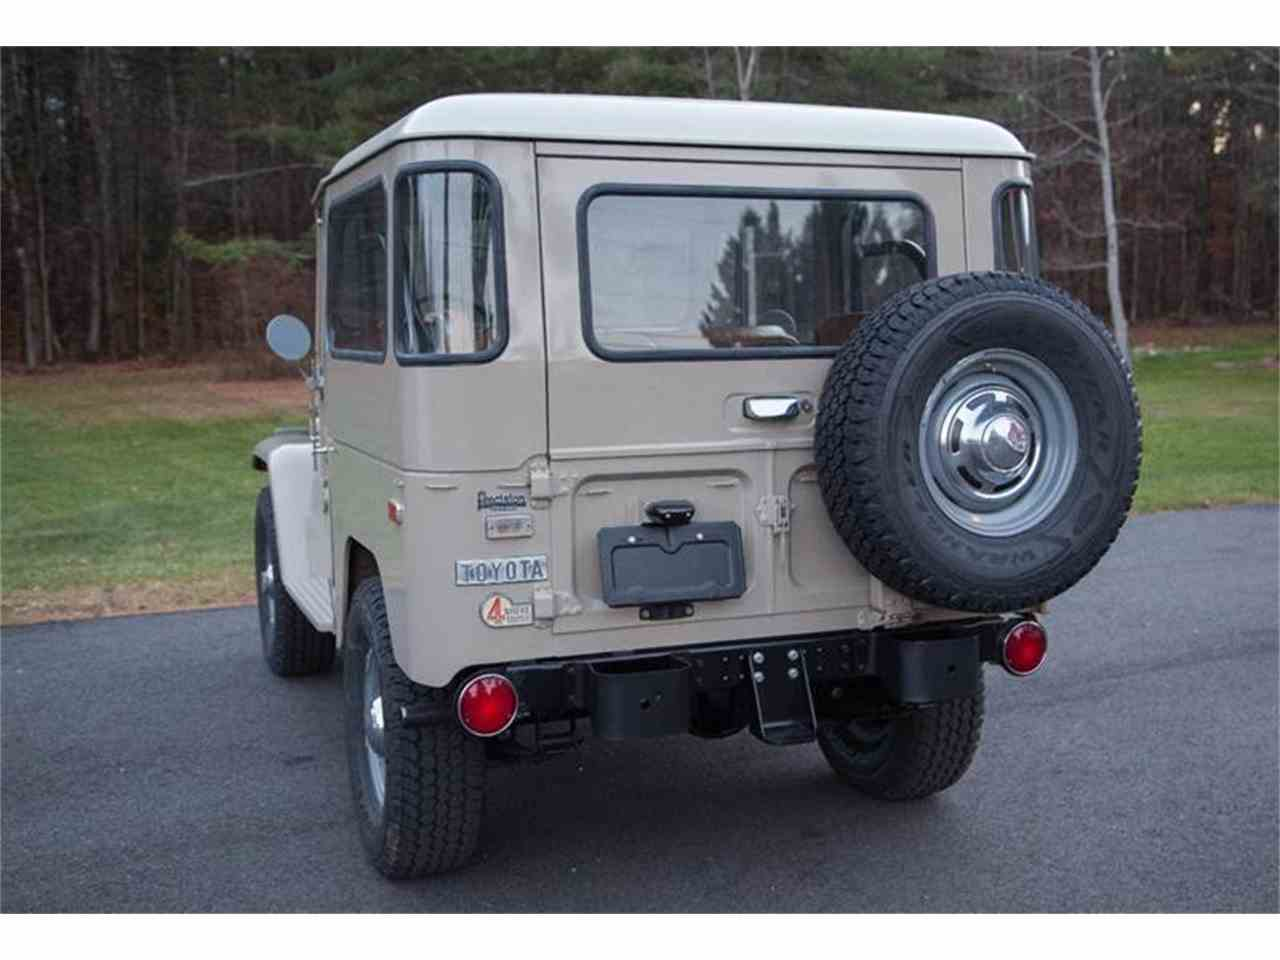 Large Picture of '72 Toyota Land Cruiser FJ located in Essex Junction Vermont Offered by Essex Motorsport LLC - LI7I